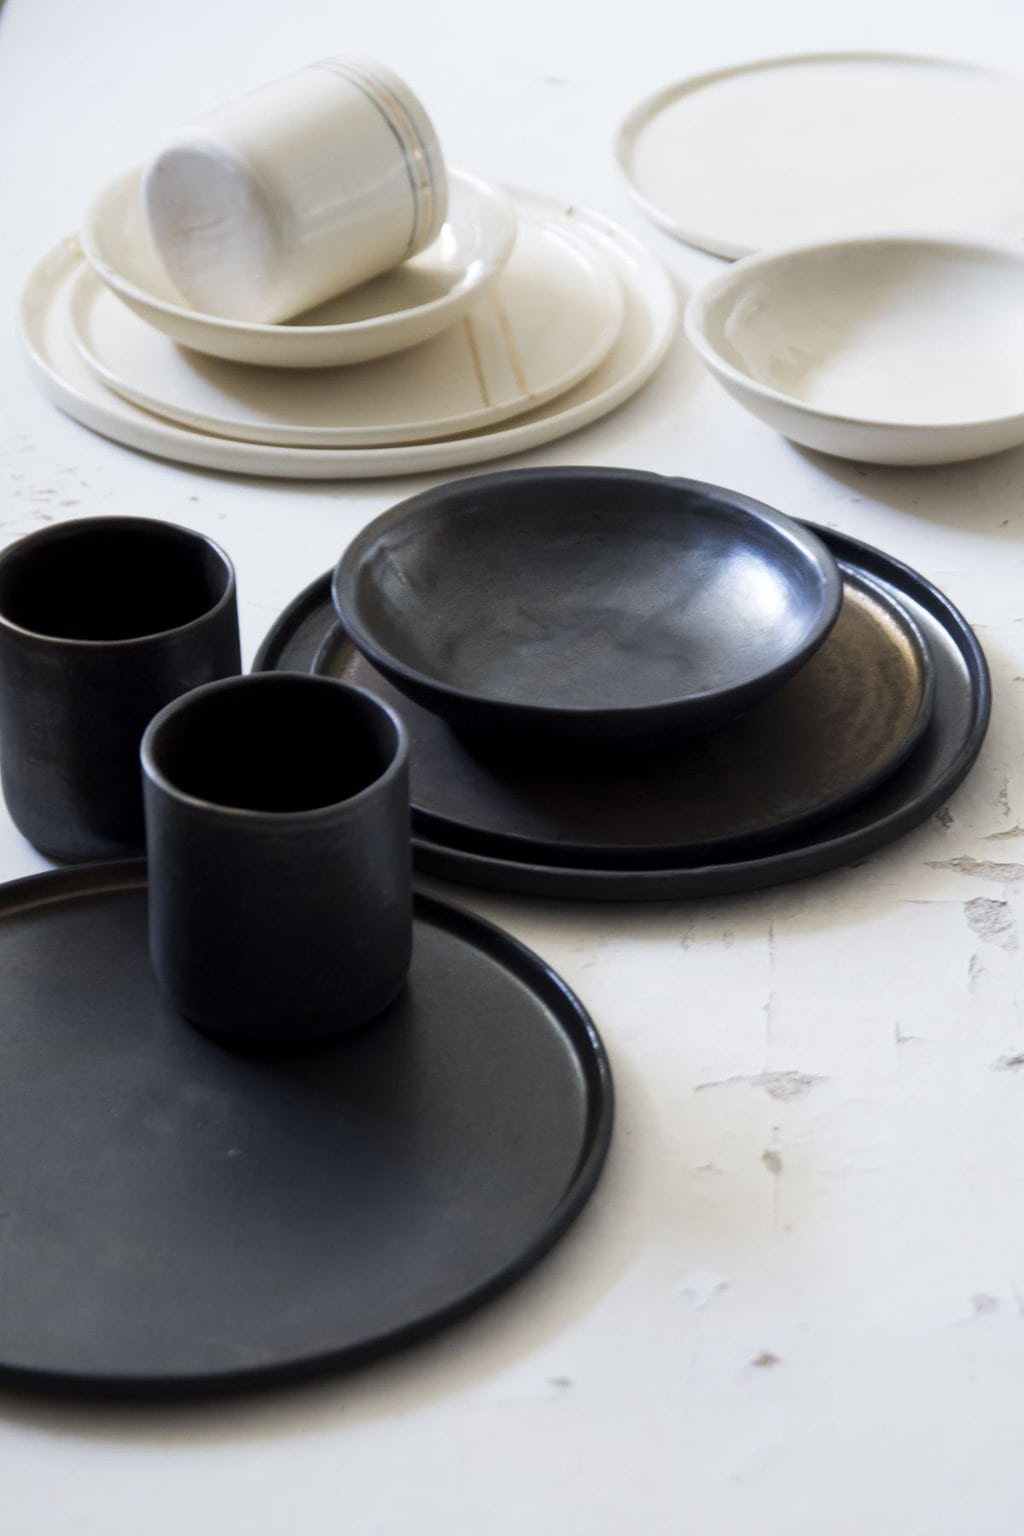 Honeycomb Studio handmade small batch ceramics in Atlanta, GA on Thou Swell @thouswellblog